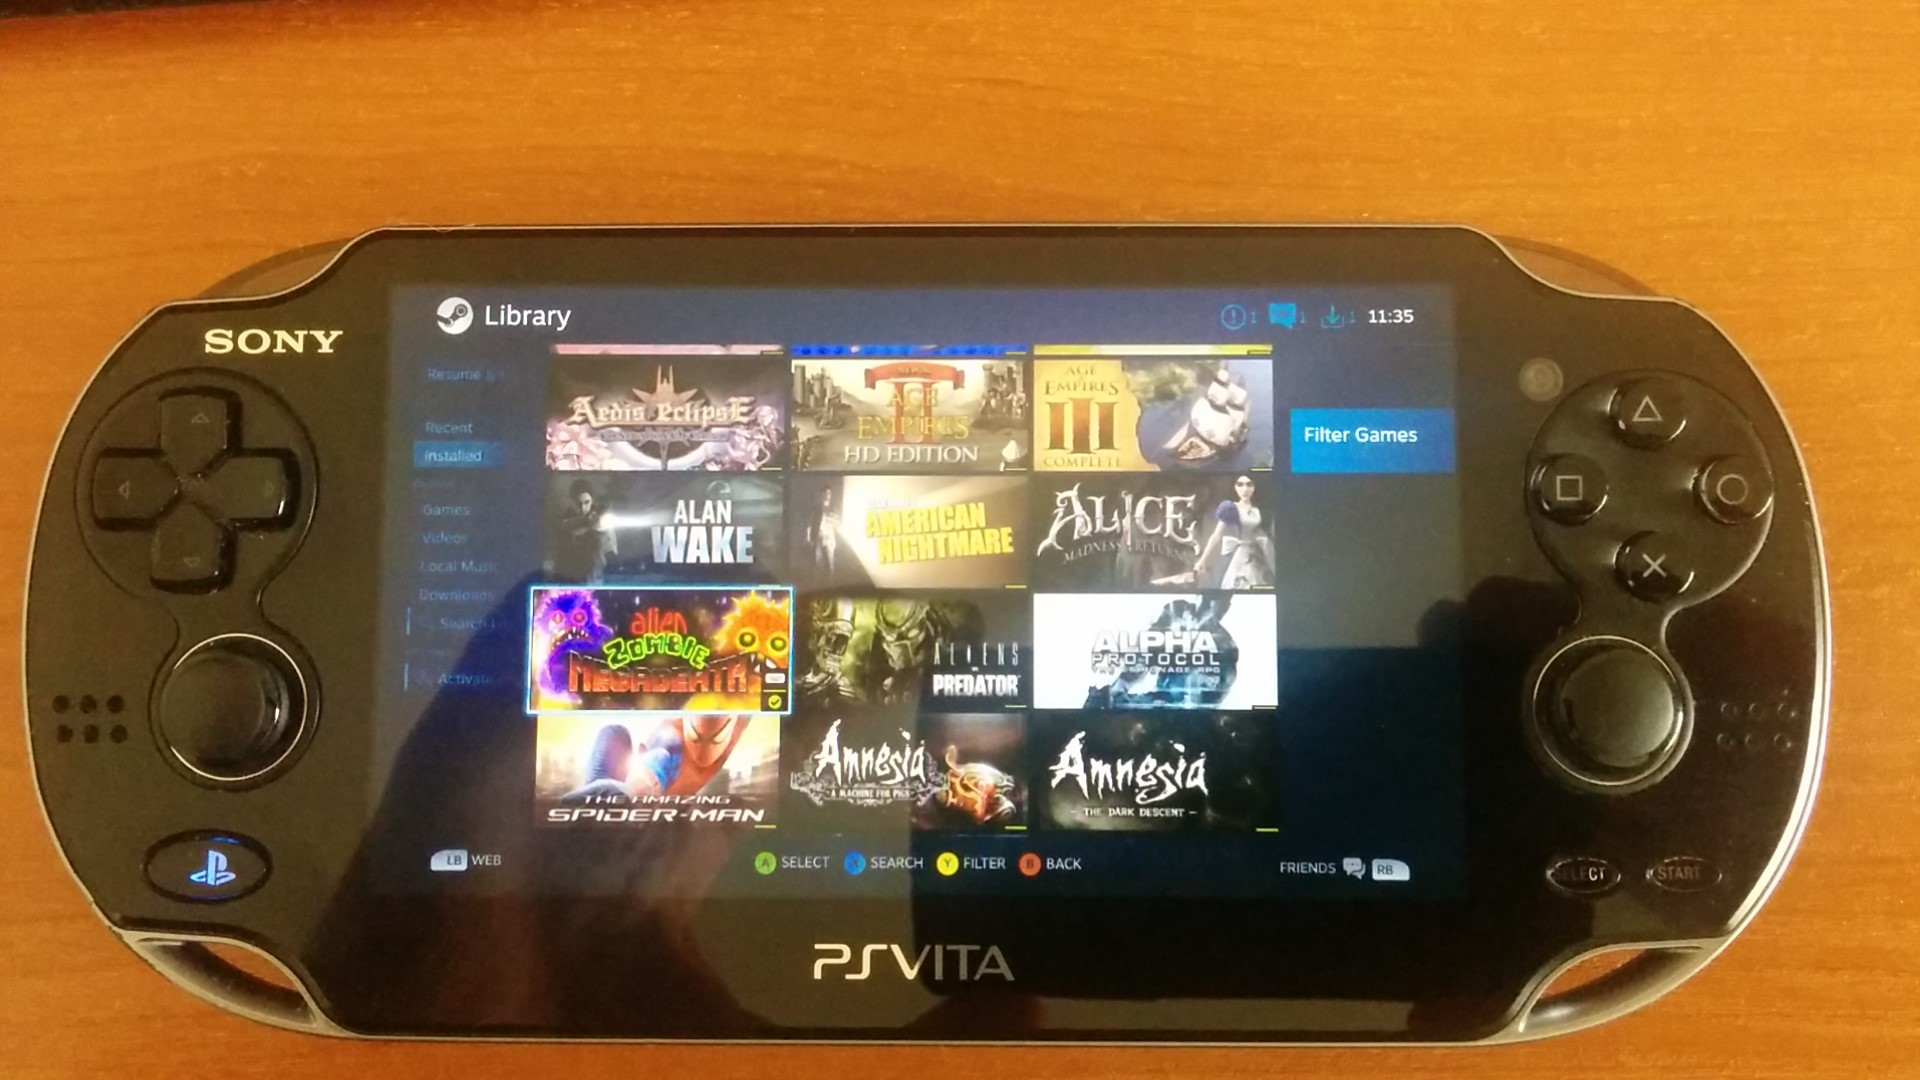 ps vita emulator 1.2.0 download